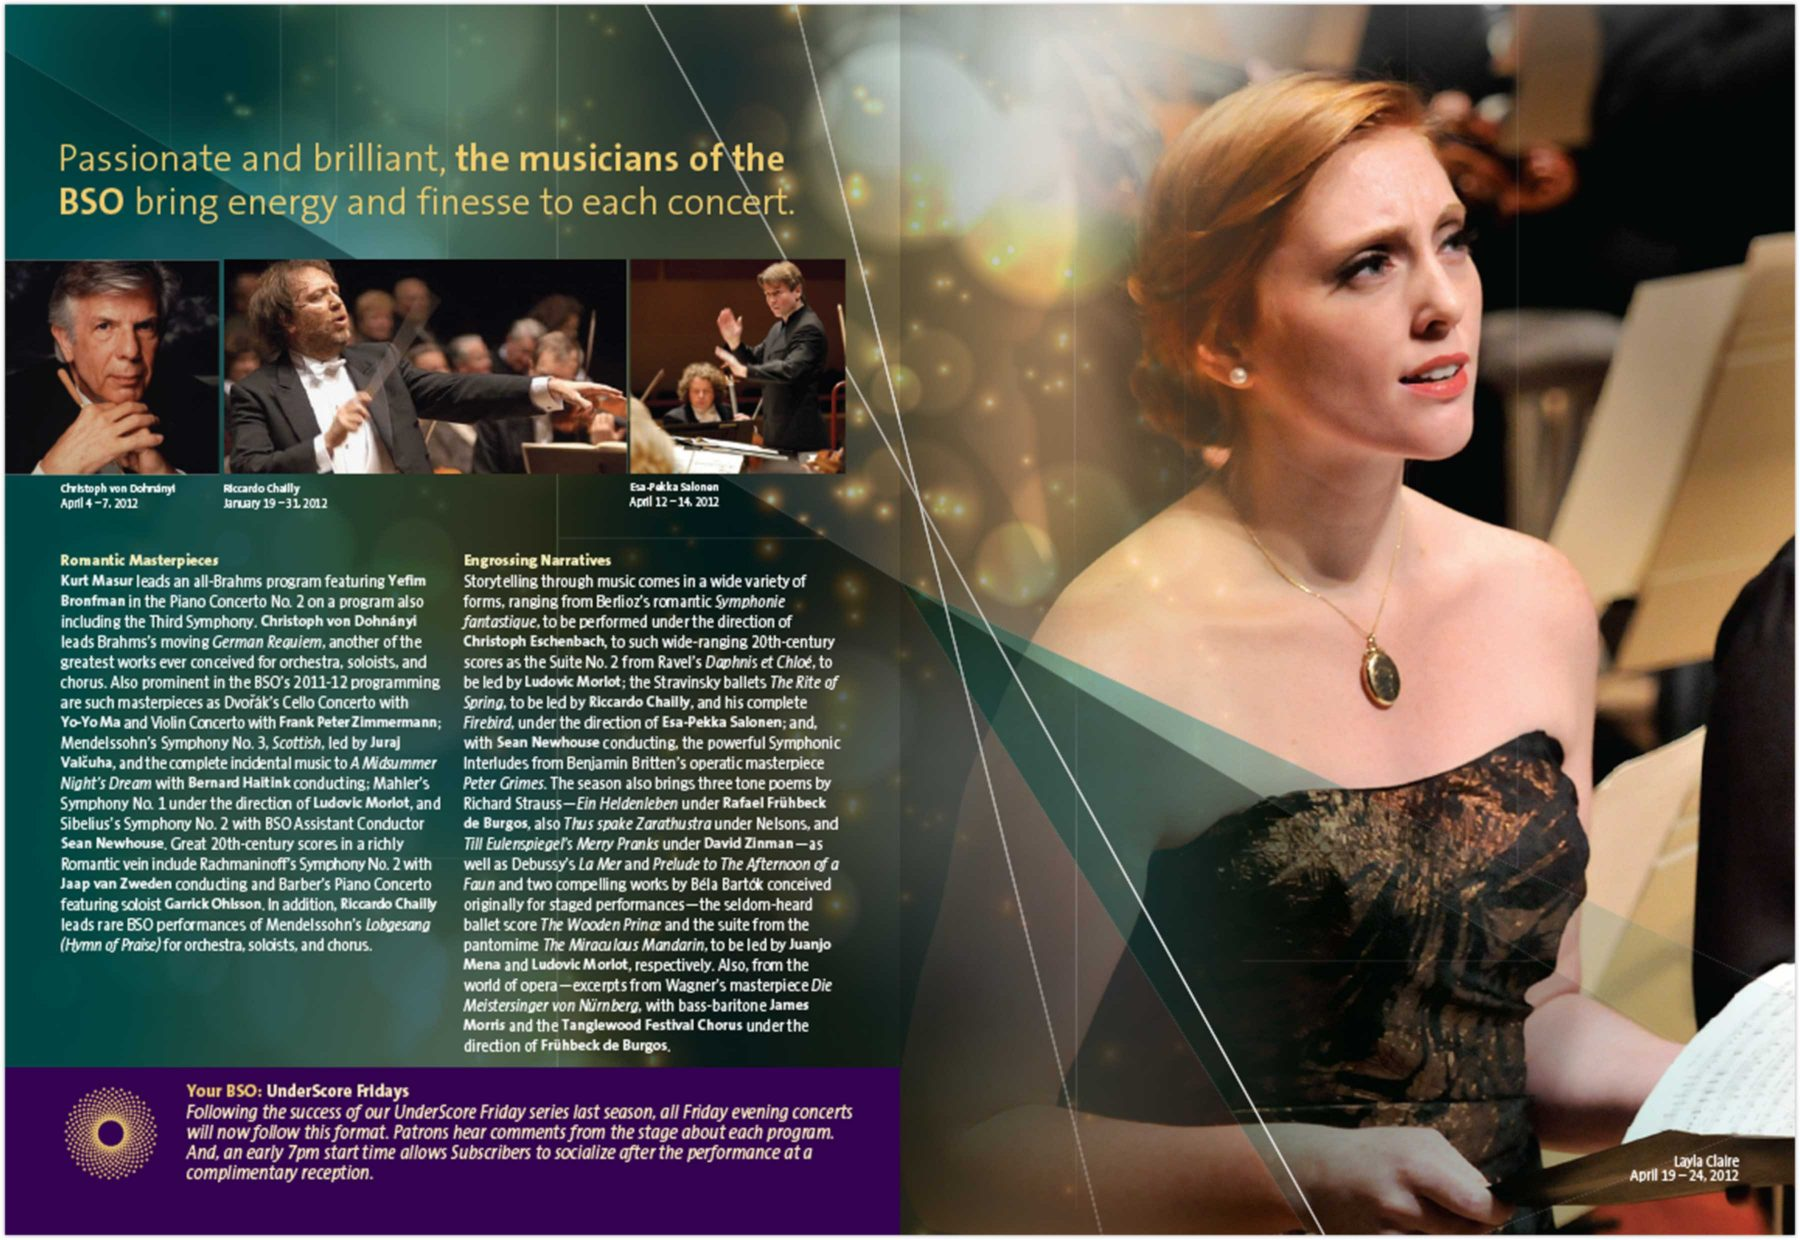 Brochure page: Passionate and brilliant, the musicians of the BSO bring energy and finesse to each concert